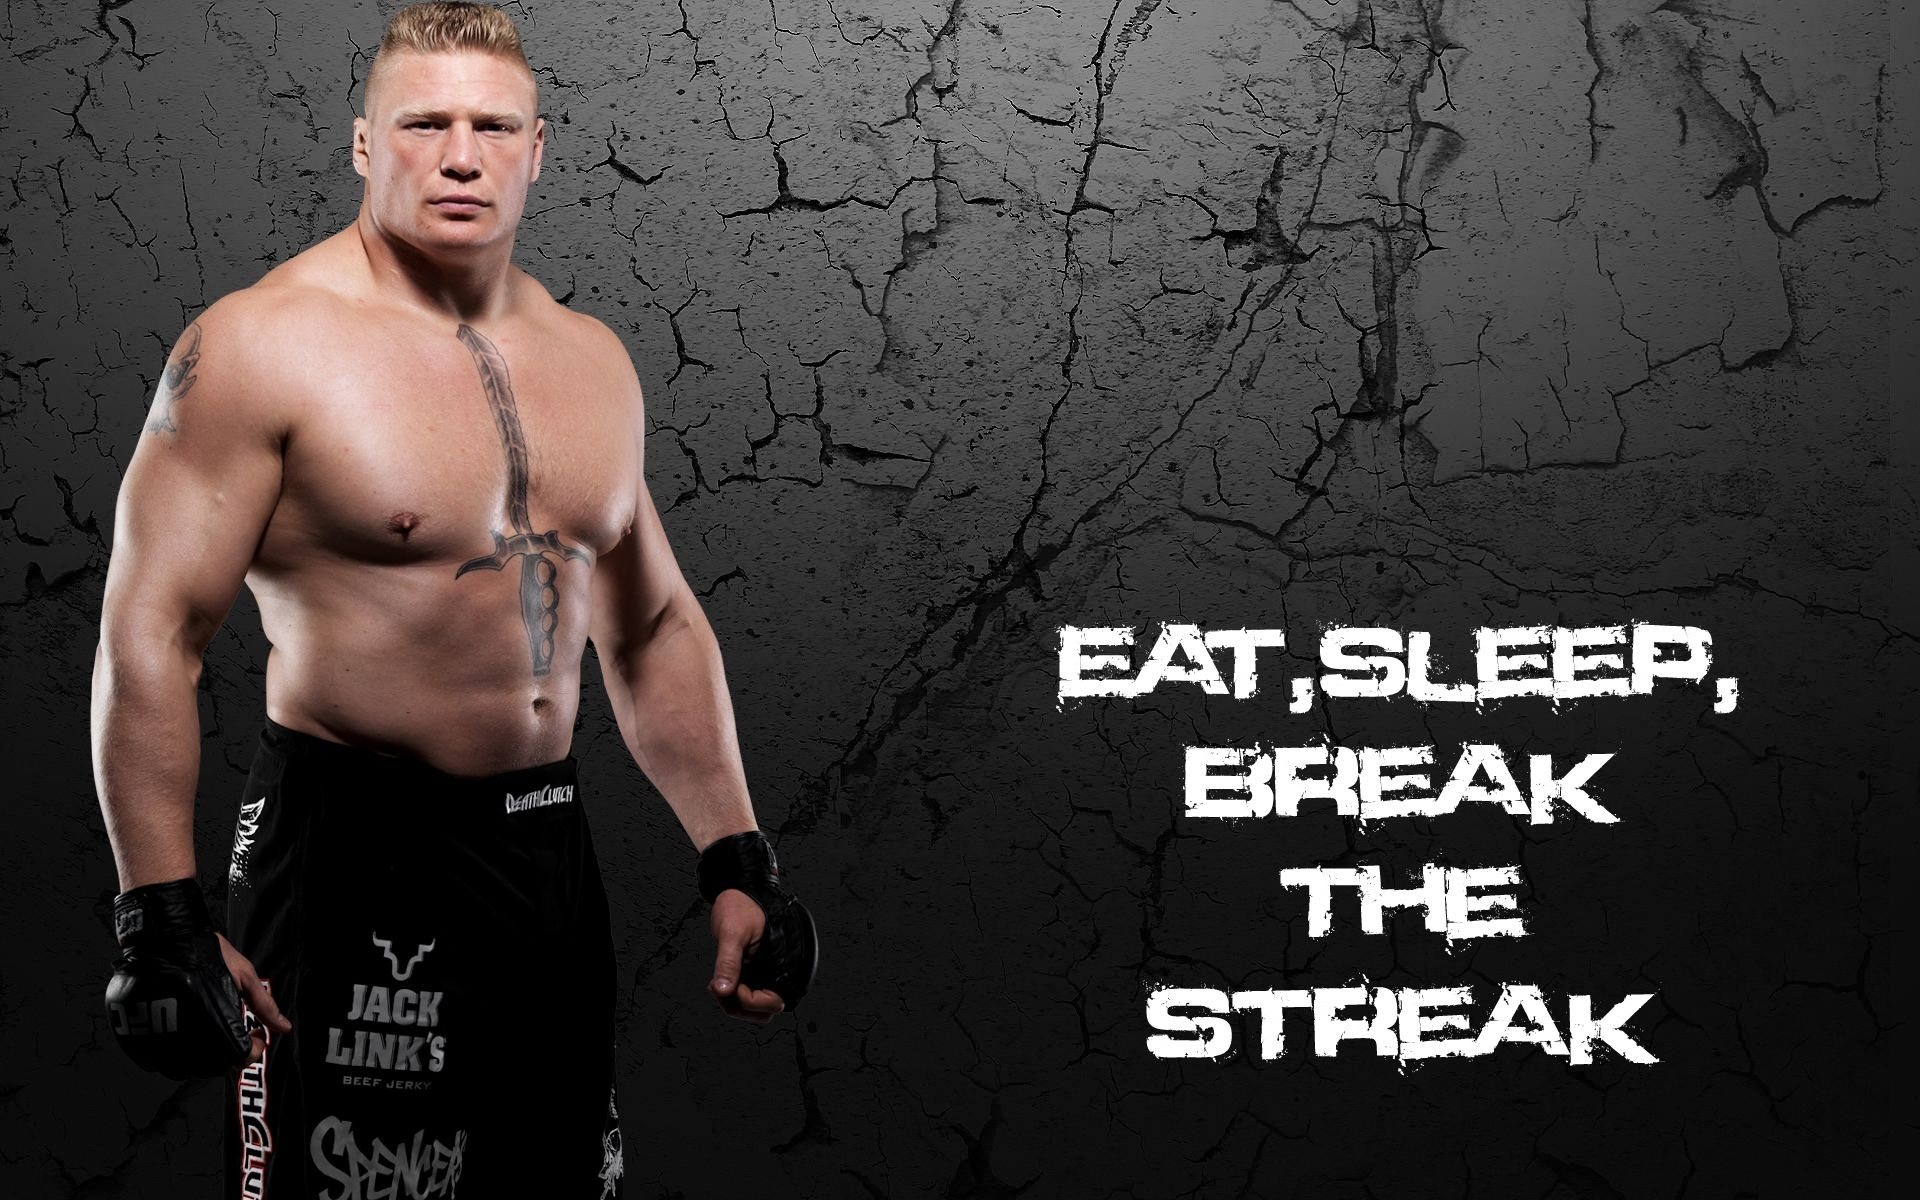 brock lesnar hd wallpapers 6 | brock lesnar hd wallpapers